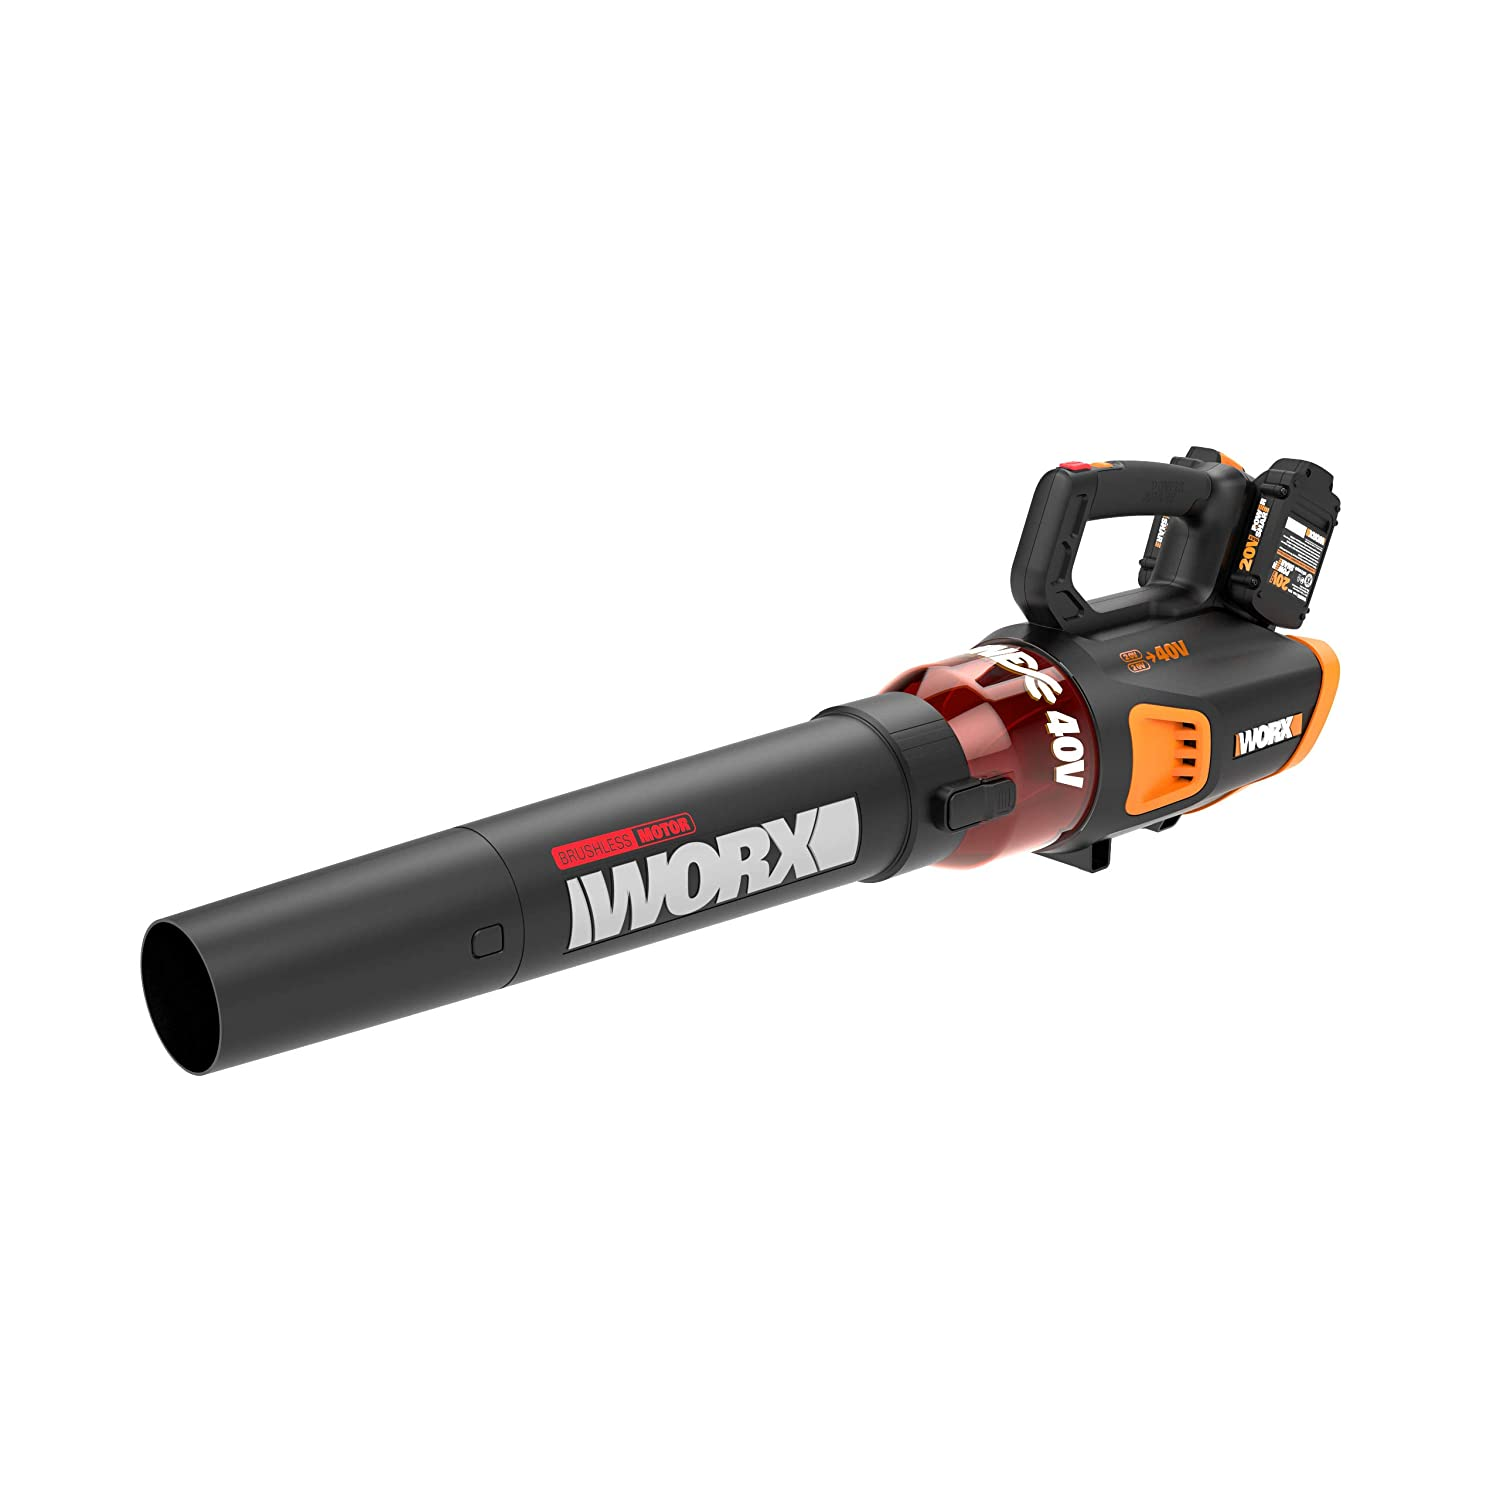 WORX WG584 40V (2.5Ah) Power Share TURBINE Blower, 430 CFM, 2 Batteries and Dual Charger Included